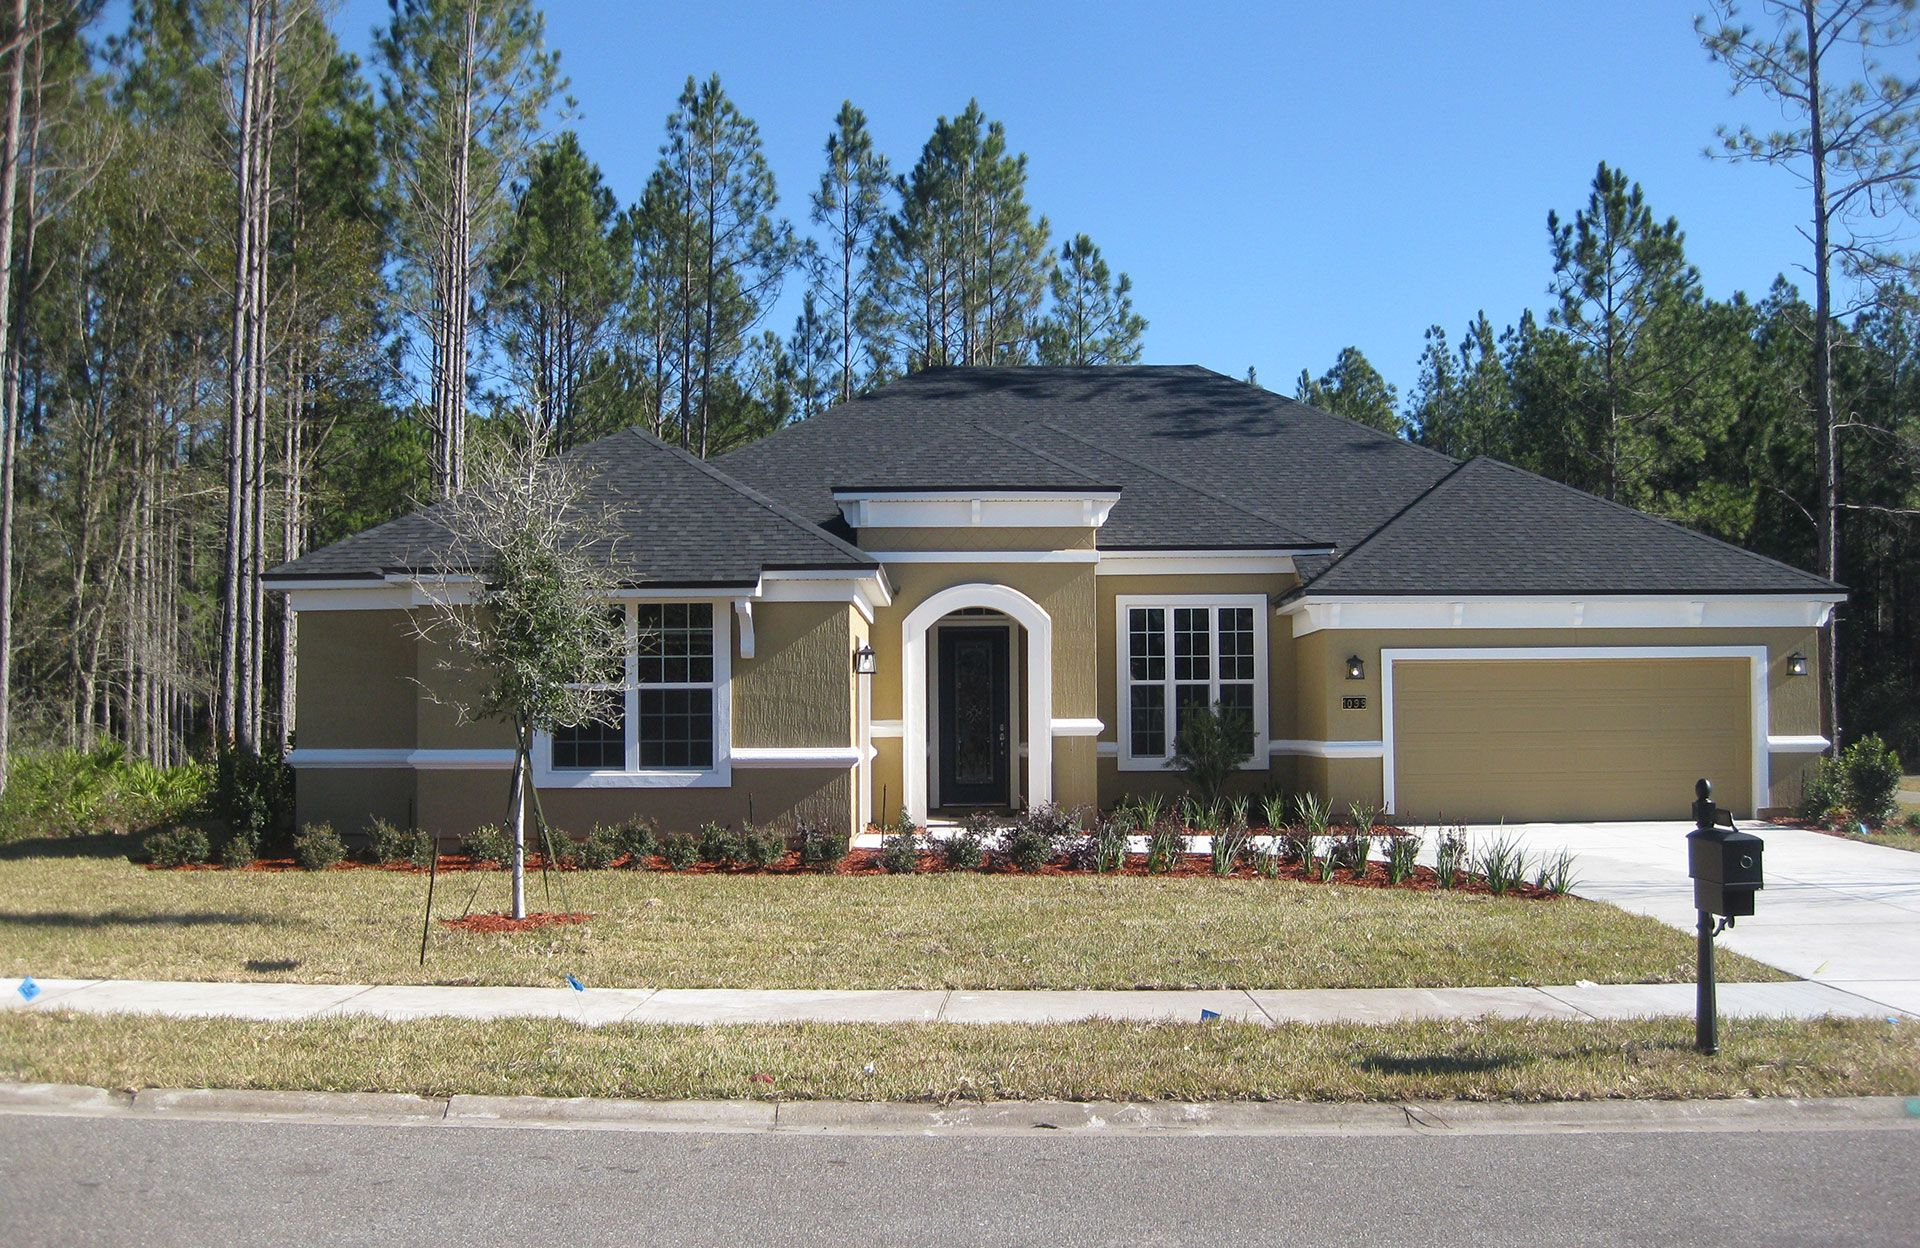 Real Estate at 1099 Autumn Pines Drive, Orange Park in Clay County, FL 32065